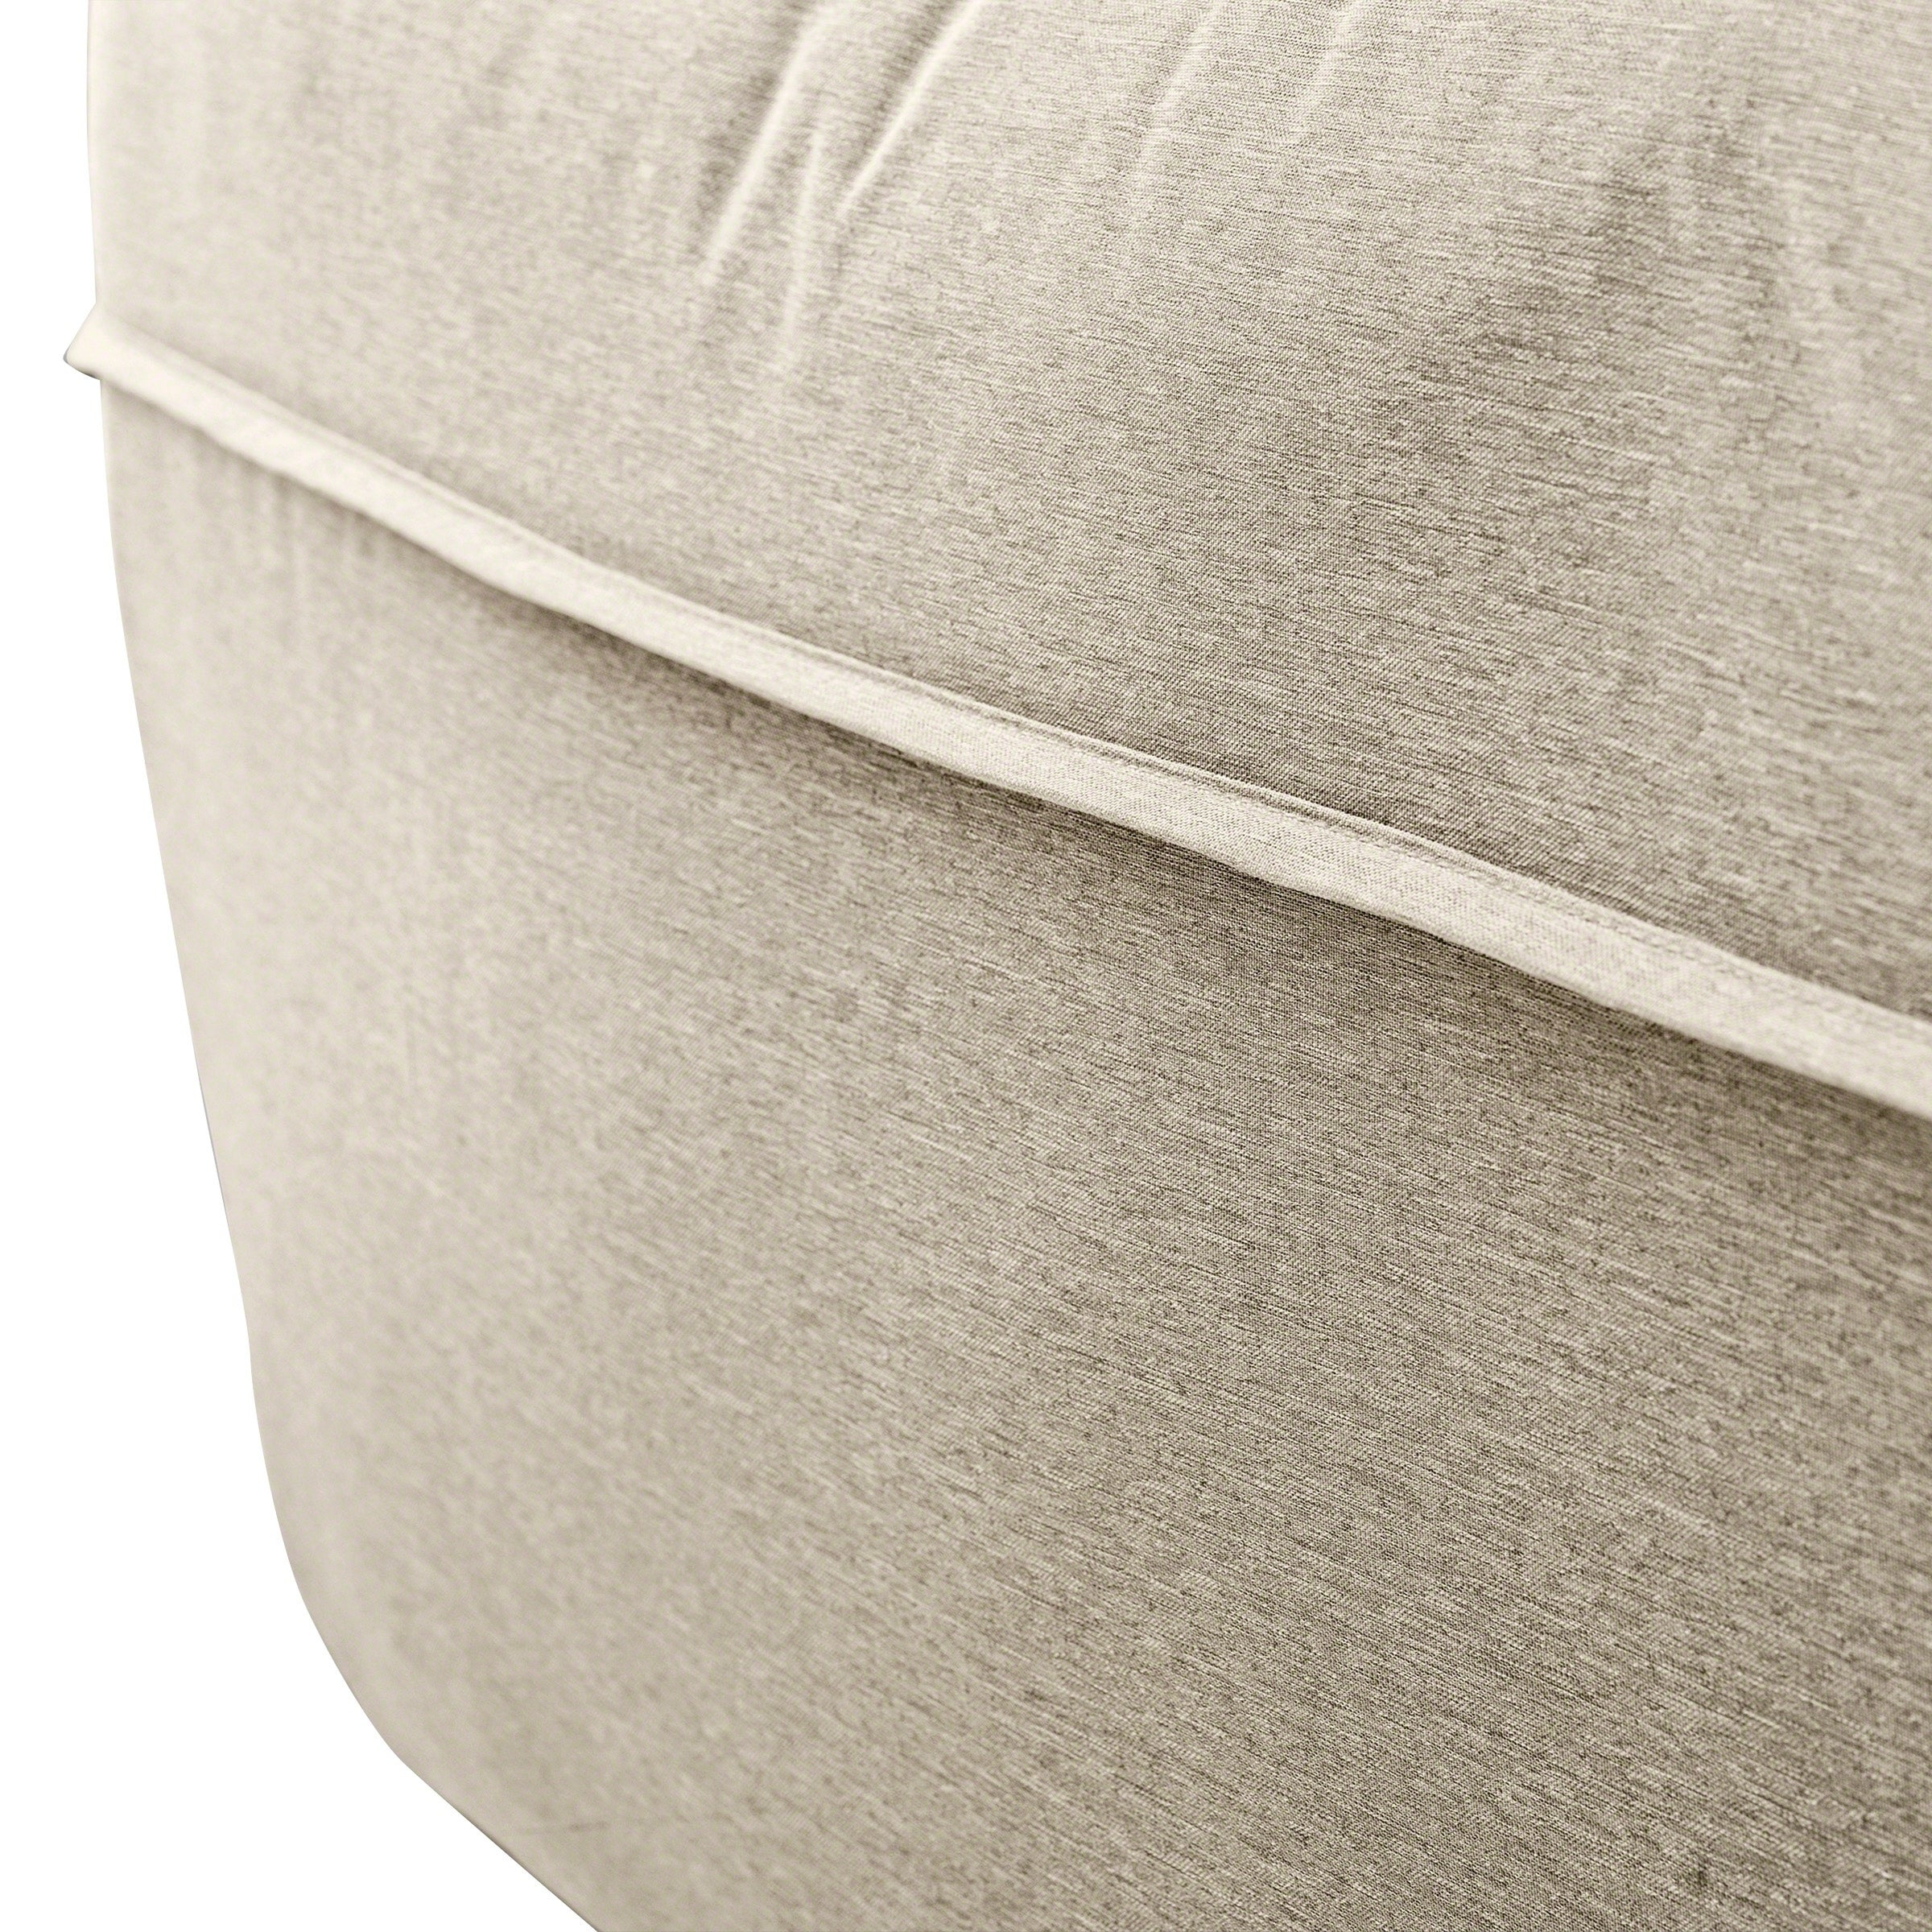 Details About Classic Accessories Montlake Fadesafe Patio Cushion Cover Storage Bag